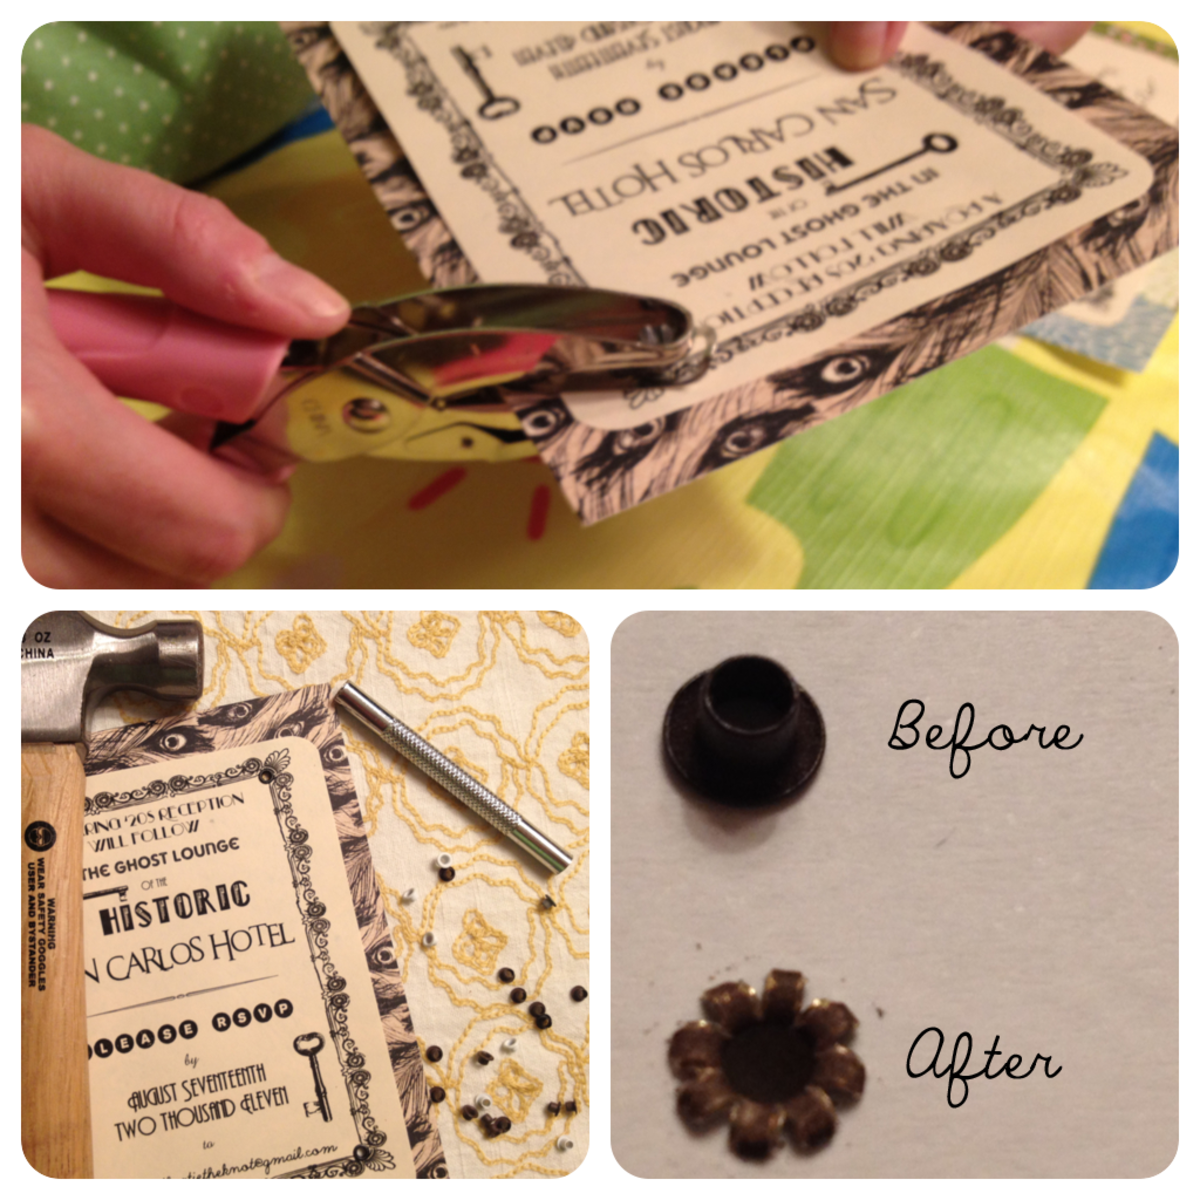 Using eyelets can help protect your paper invitations, especially if you plan on using ribbon for decoration.